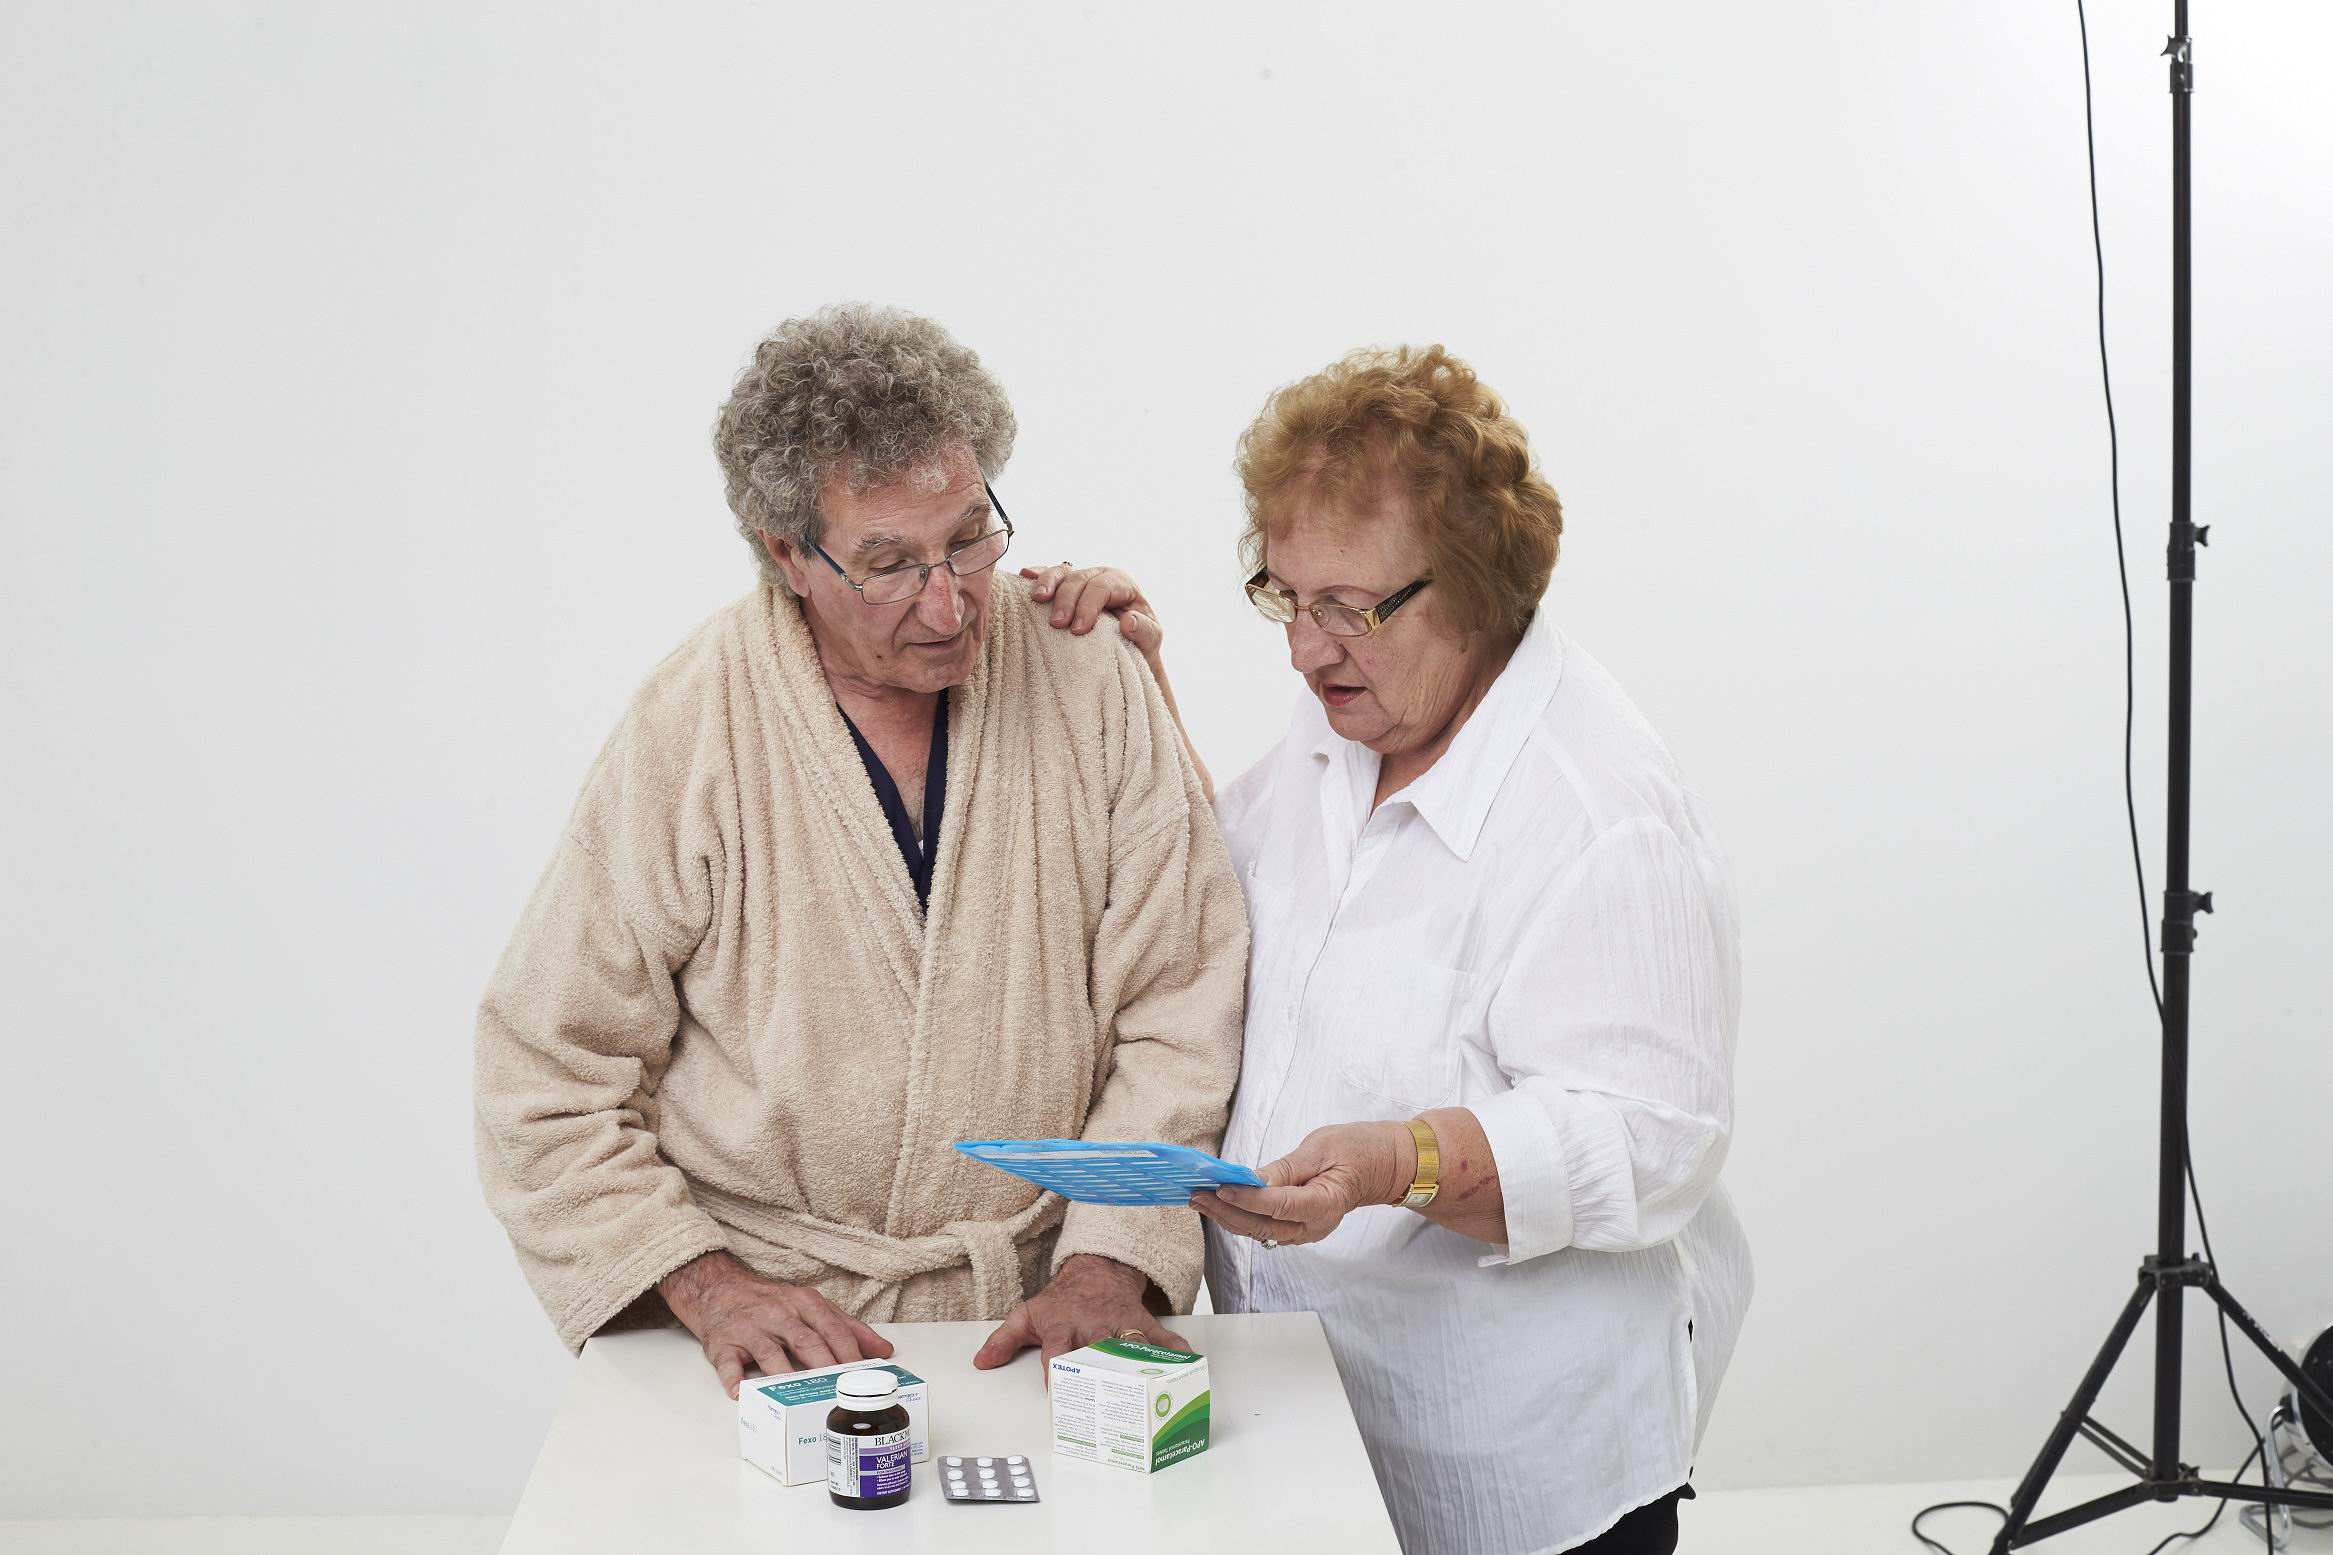 Stay On Your Feet volunteers Frank Medland and Alma Digweed urge people to check their daily medications during the winter season.